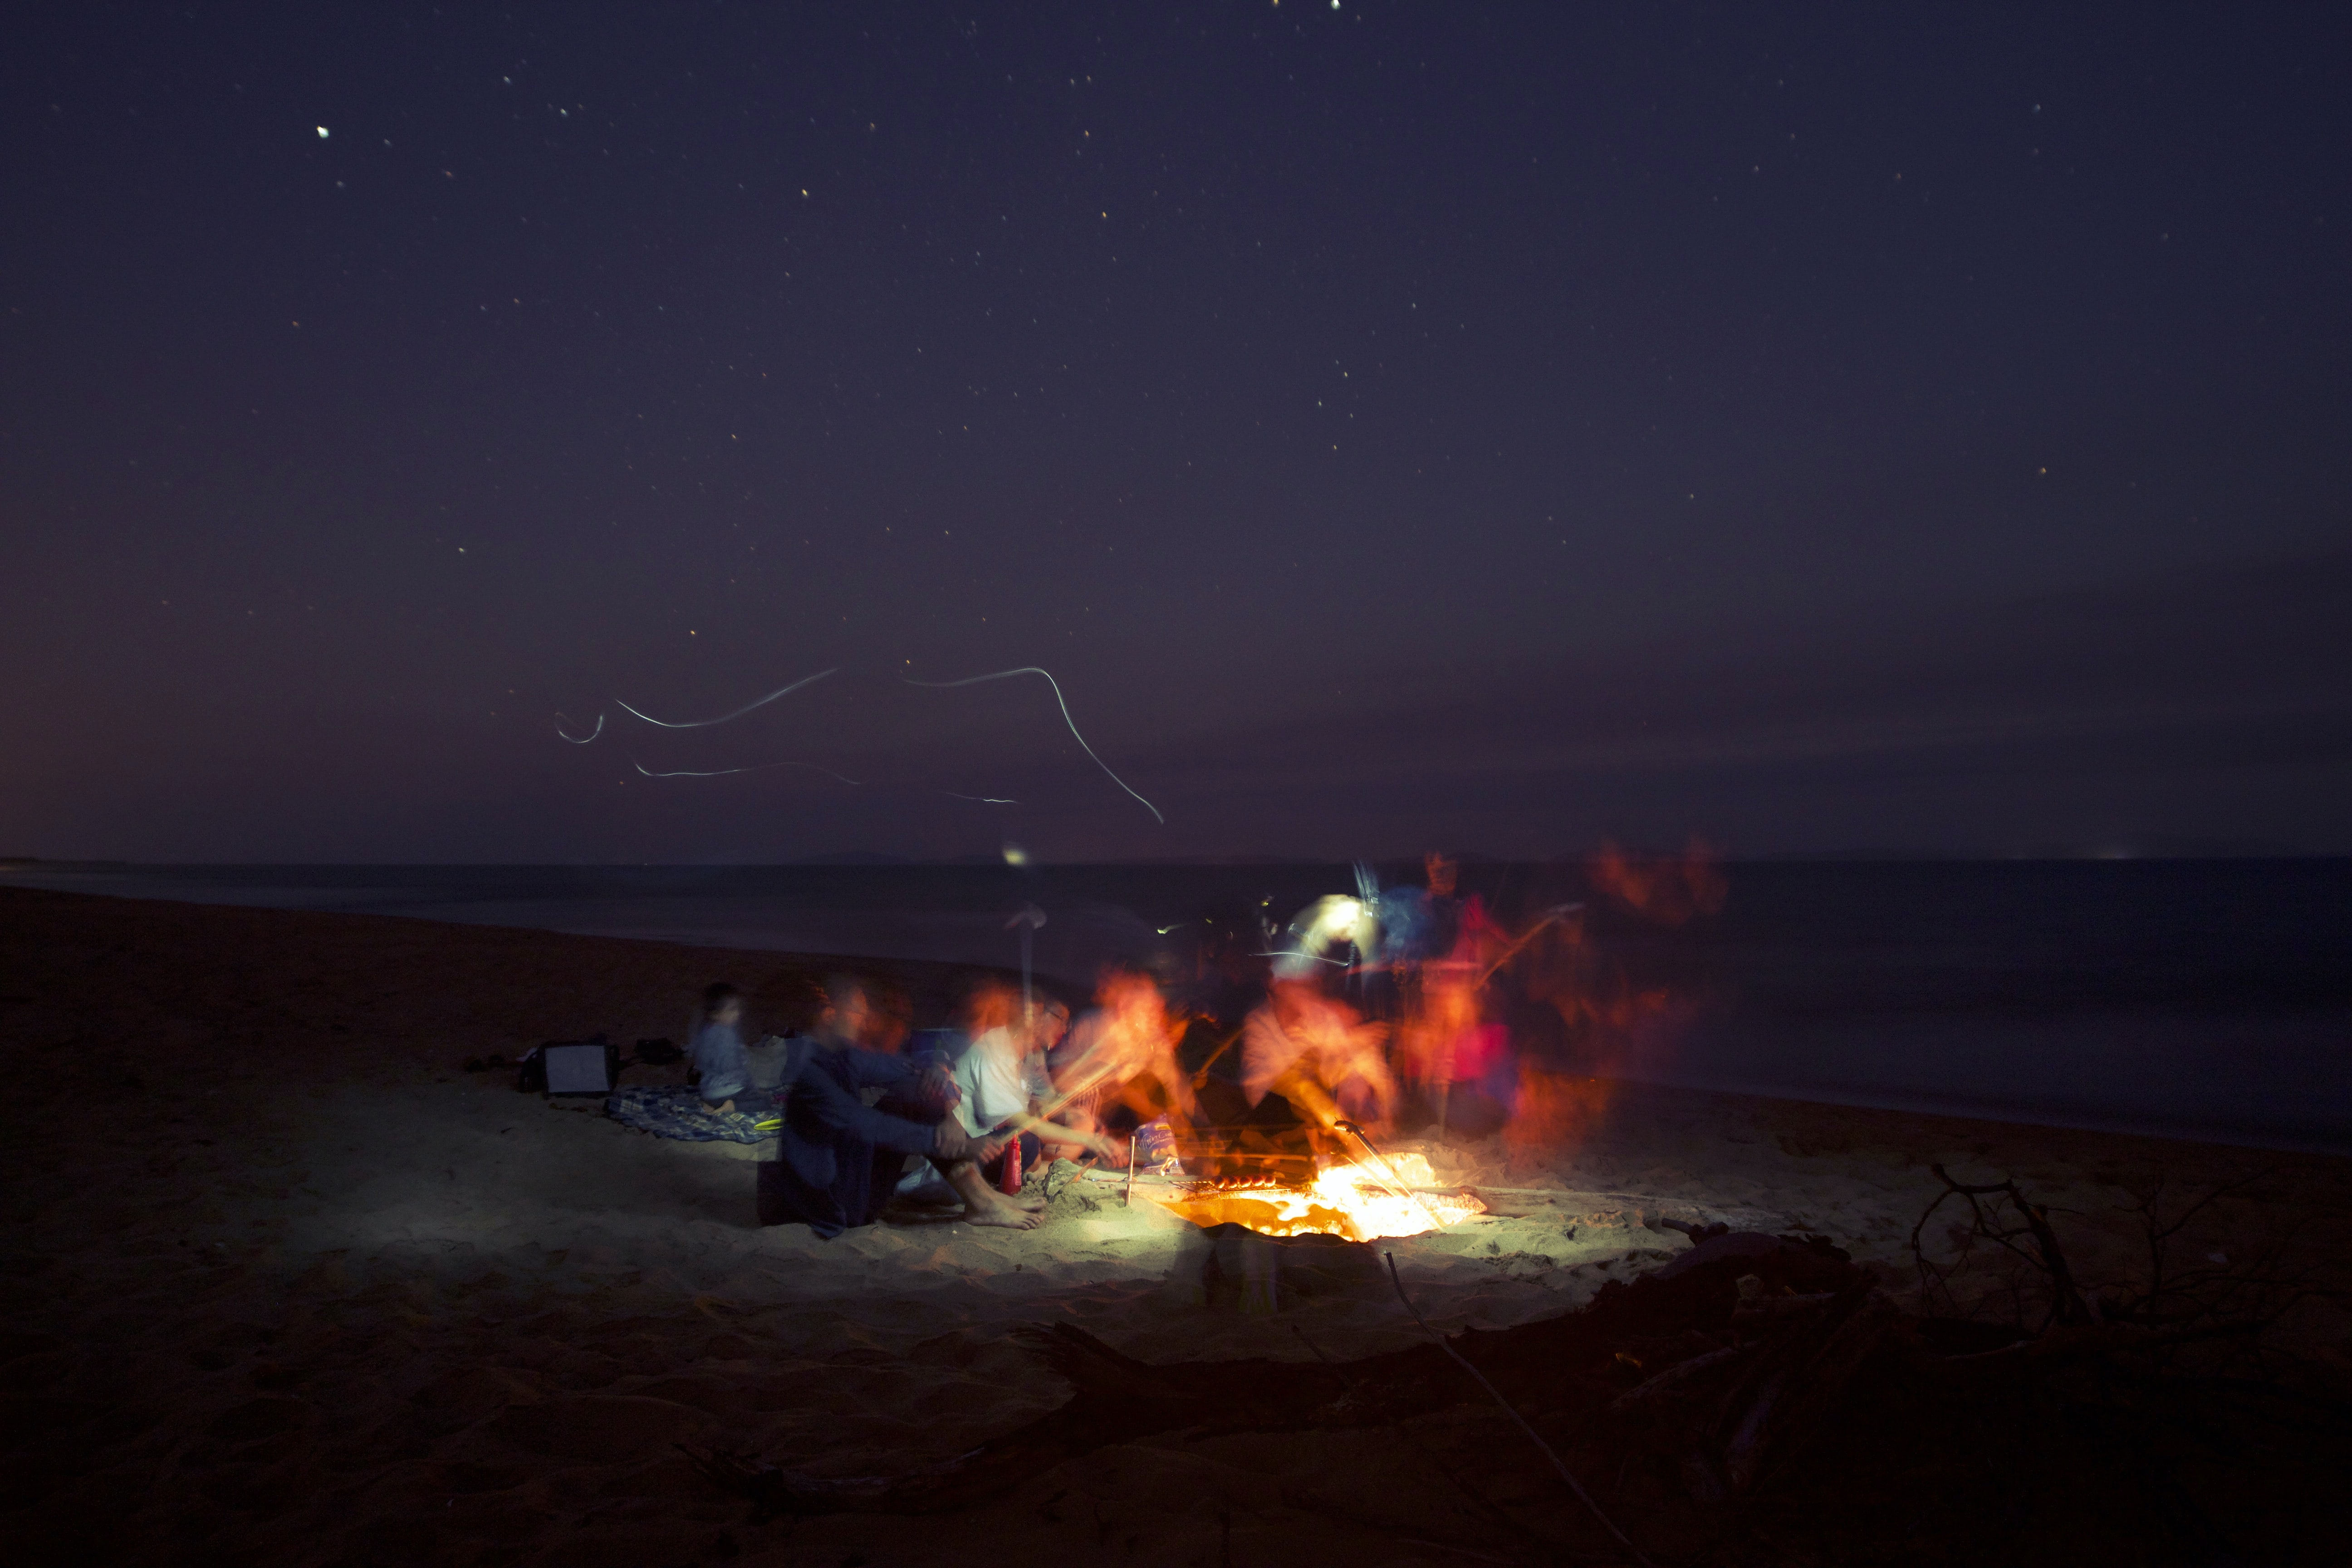 Long exposure of a group of friends hanging around a beach bonfire lighting the dark night